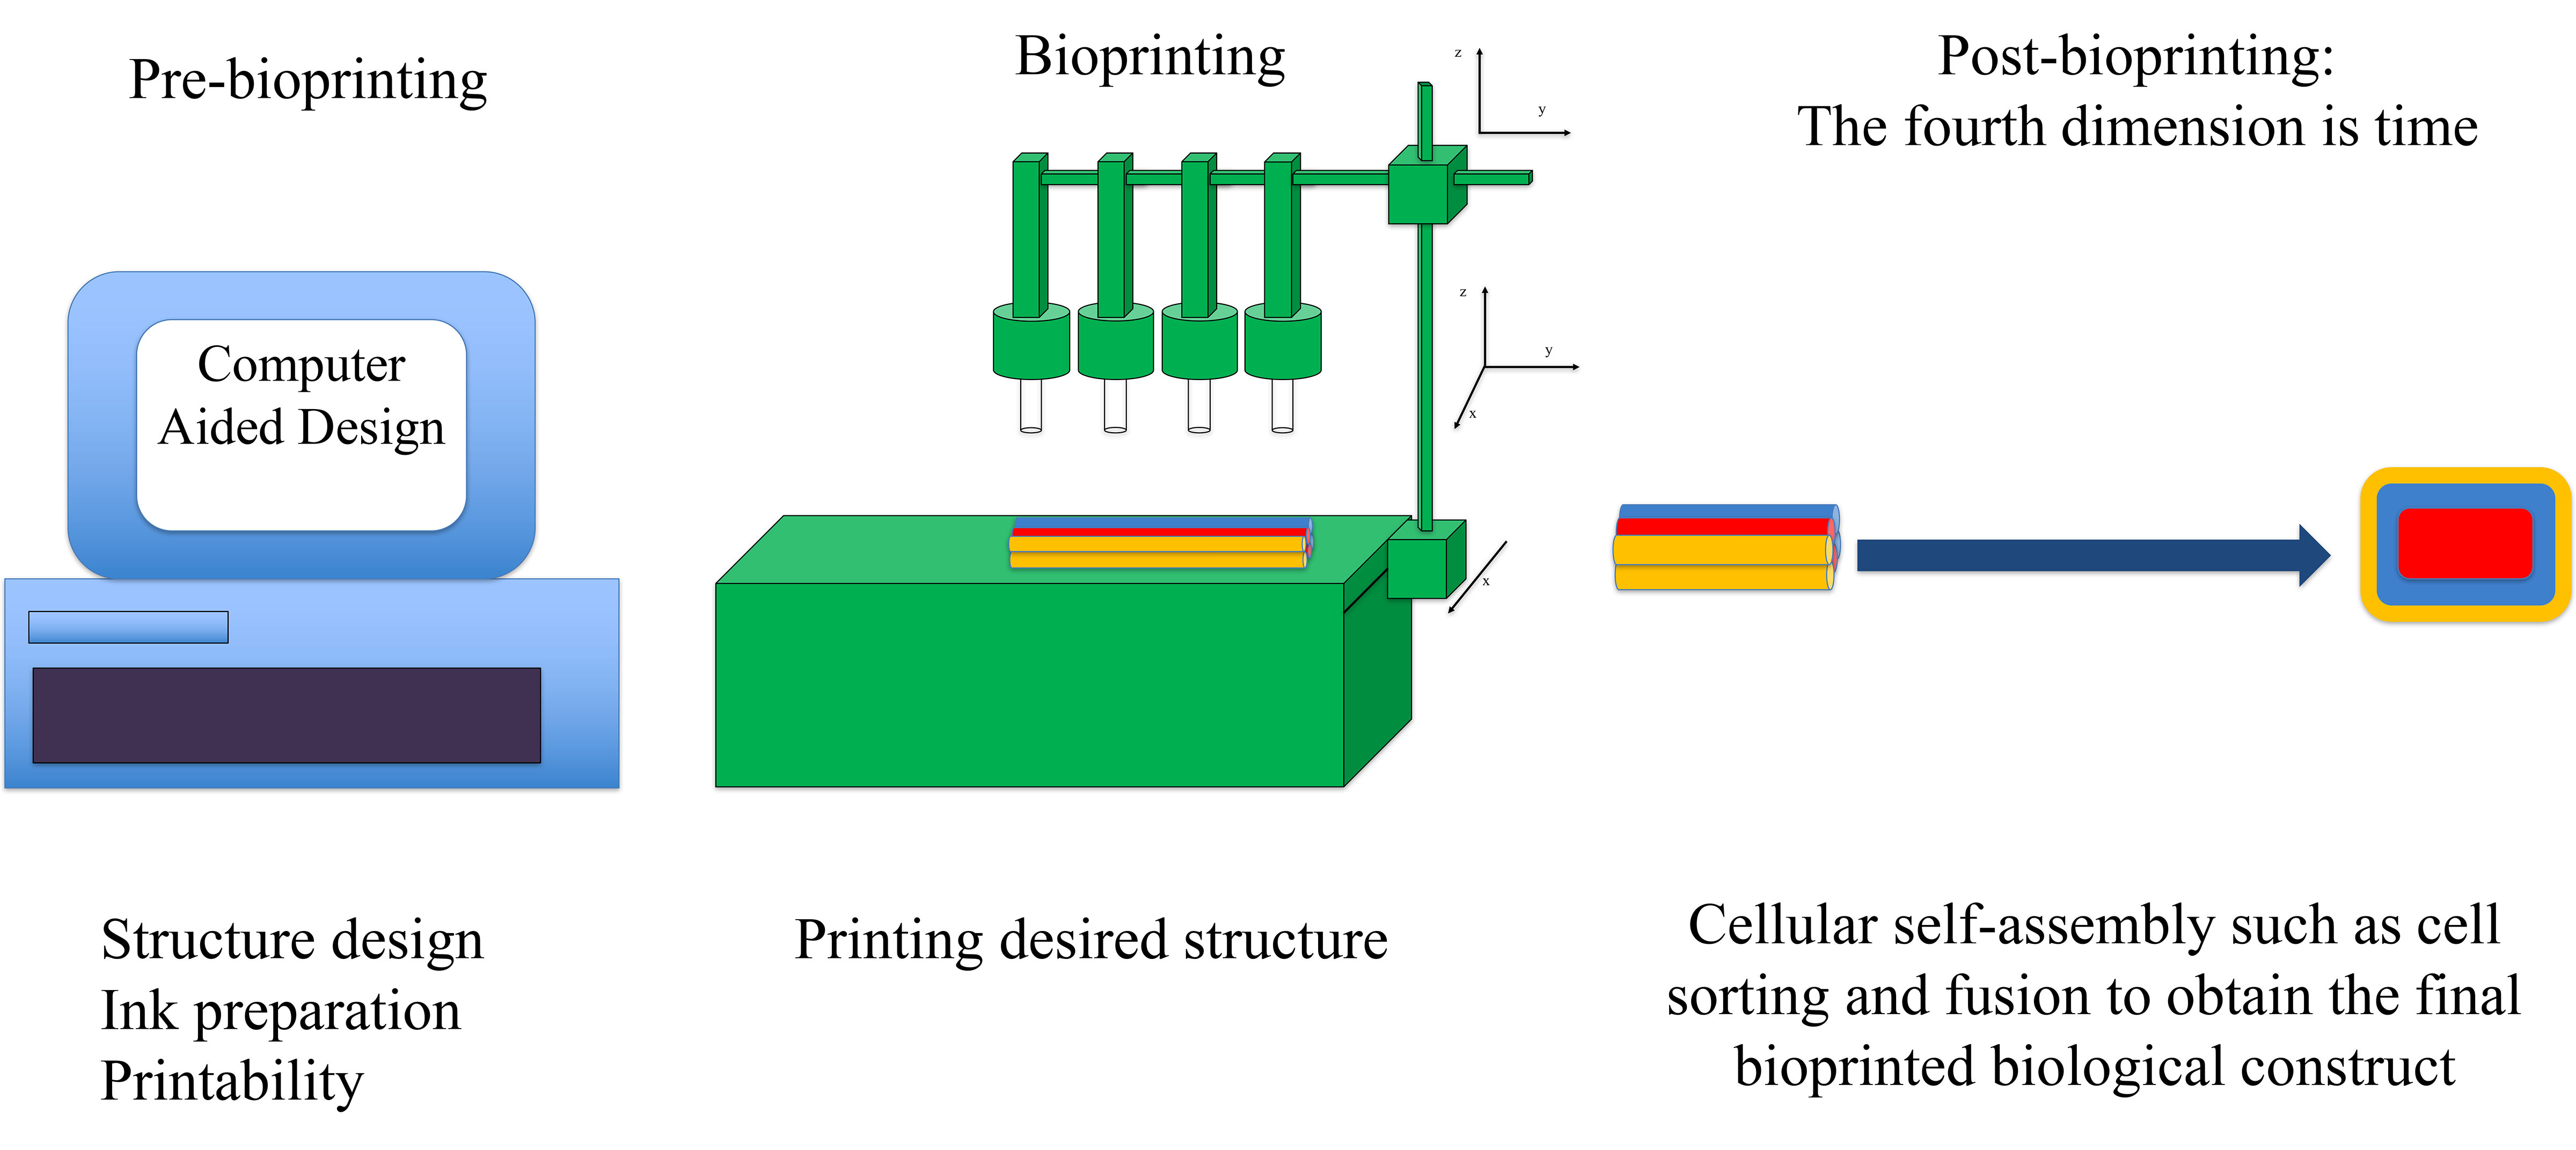 Bioprinting comprises three main stages: 1. Pre-bioprinting, which includes structure design, bioink preparation, and printability assessment. The laws of physics can help scientists prepare bioinks with tunable parameters for the best fabrication outcome; 2. The bioprinting process, which involves the delivery of optimized, as-prepared bioinks in the desired shape using a computer-controlled system; 3. Post-bioprinting, the most critical stage, which incorporates the fourth dimension of bioprinting, time. This stage involves several cellular self-assembly processes governed by physical laws. The physics of cellular self-assembly has been investigated by researchers to achieve functional and viable bioprinted tissues/organs. CREDIT: Ashkan Shafiee